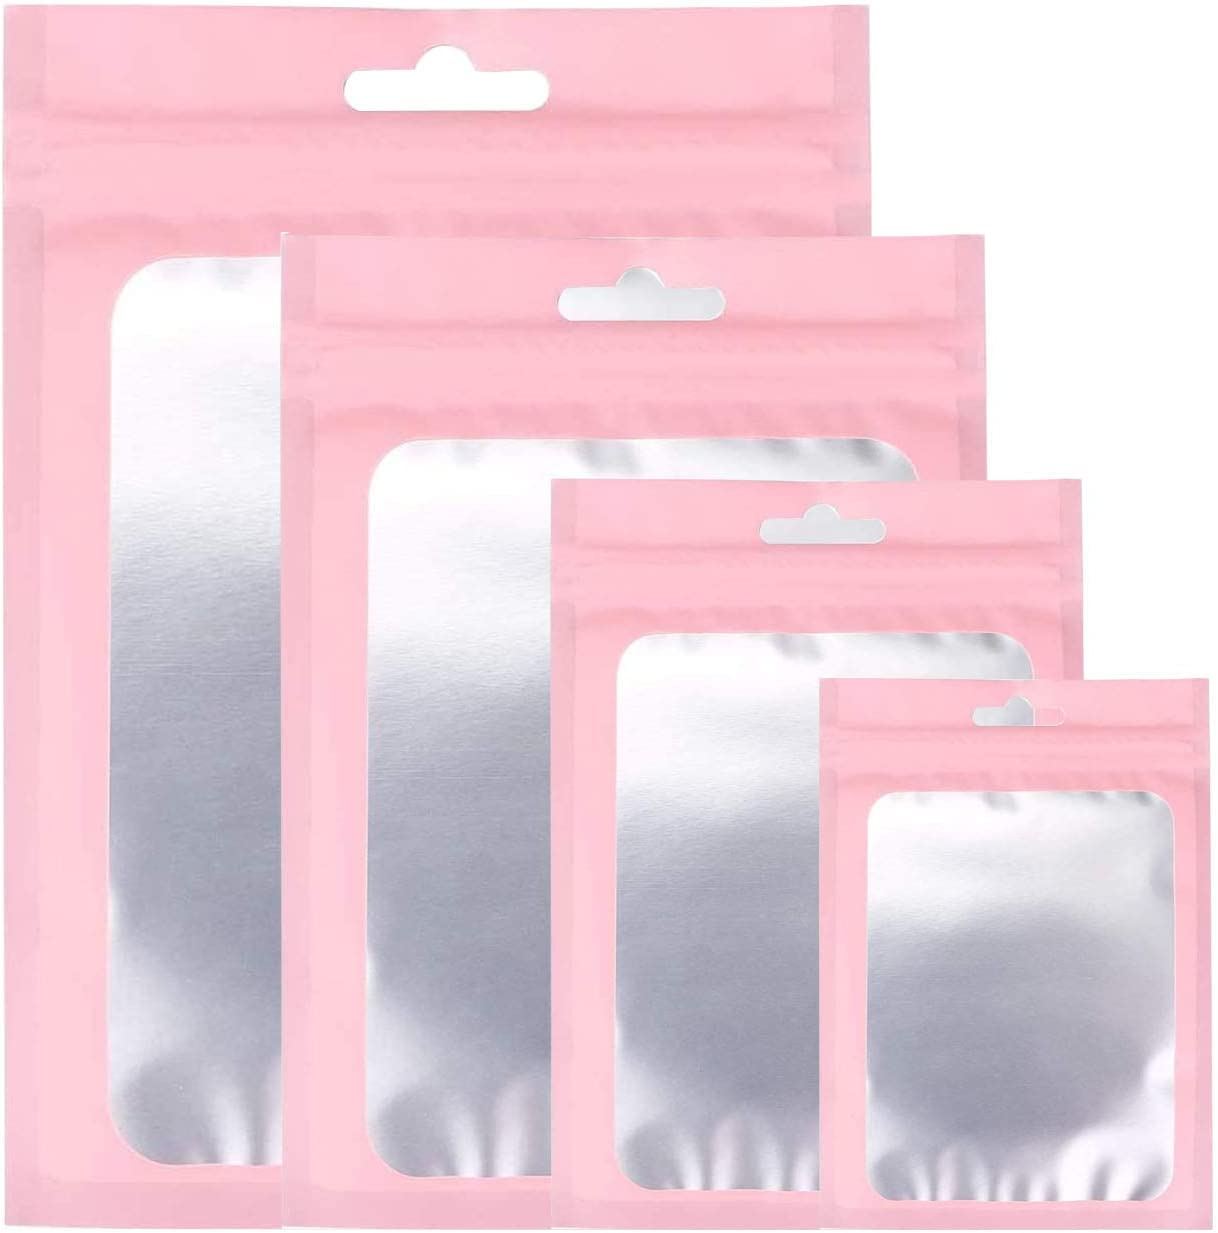 CAKKA Resealable Smell Proof Bags, 100PCS 4 Size Mylar Ziplock Odor Proof Bag, Aluminum Foil Pouch for Weed Candy Jewelry Cookies 3x4 4x6 5.5x8 6x9 Inch (Pink)